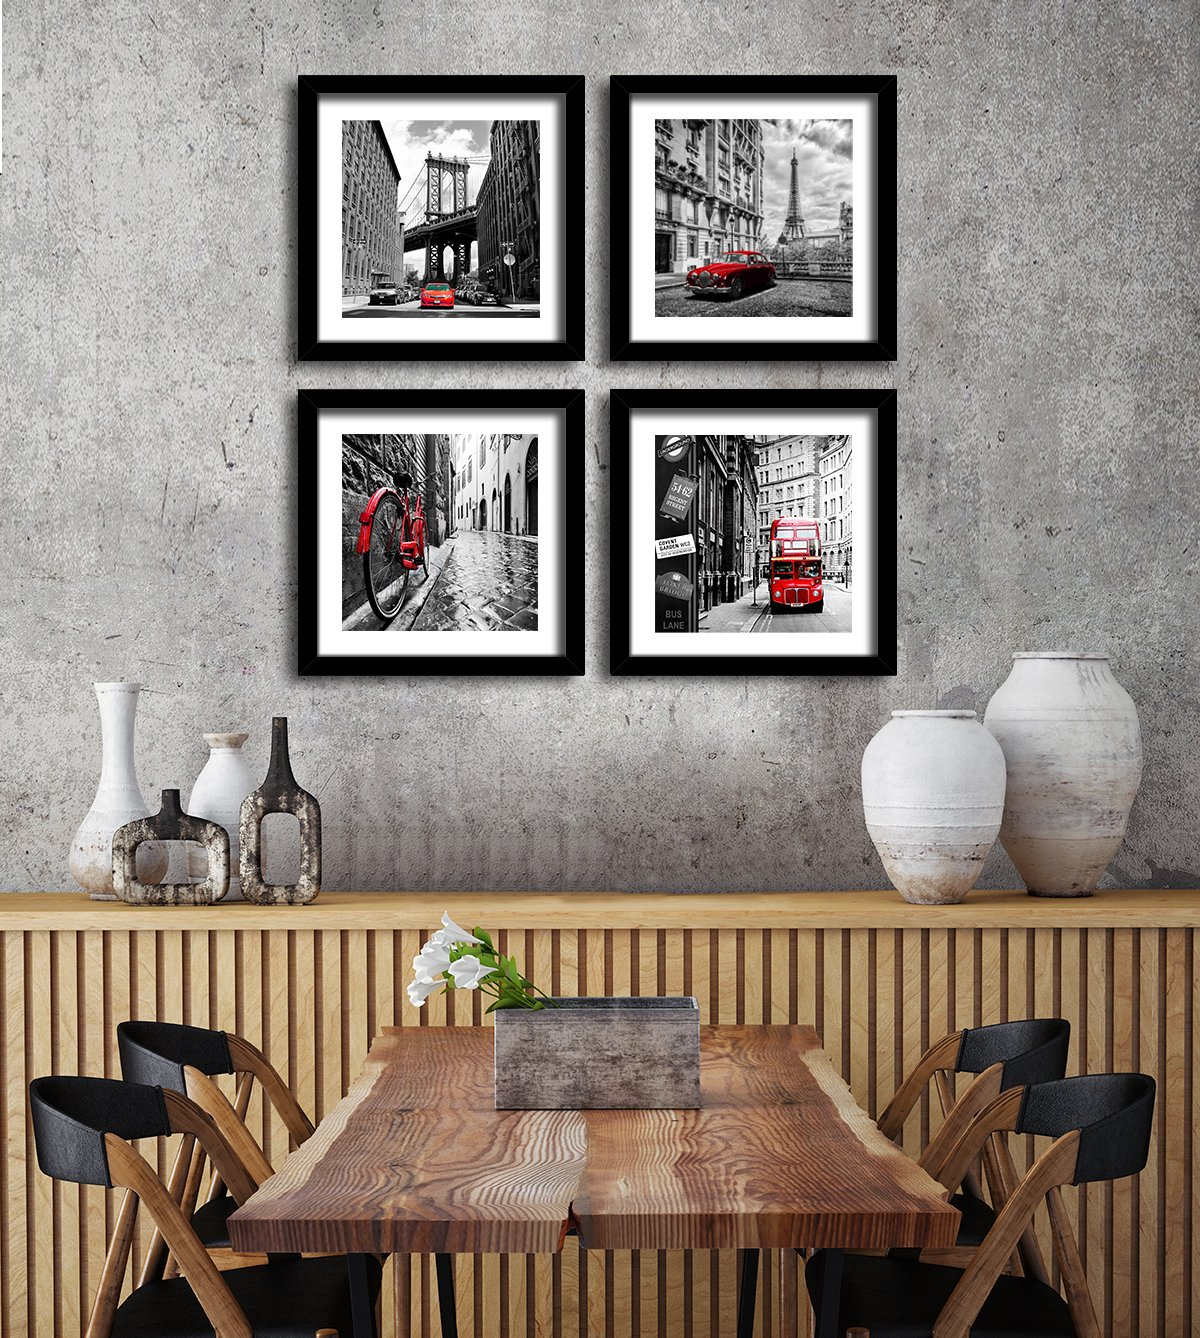 SUNFROWER ART City Wall Art - Black White Cityscape Canvas Print Wall Art - Paris Eiffel Tower - London Double Decker Buss Classic Red Car Home Office Decor (24x24inchx4, Black Picture Frame)